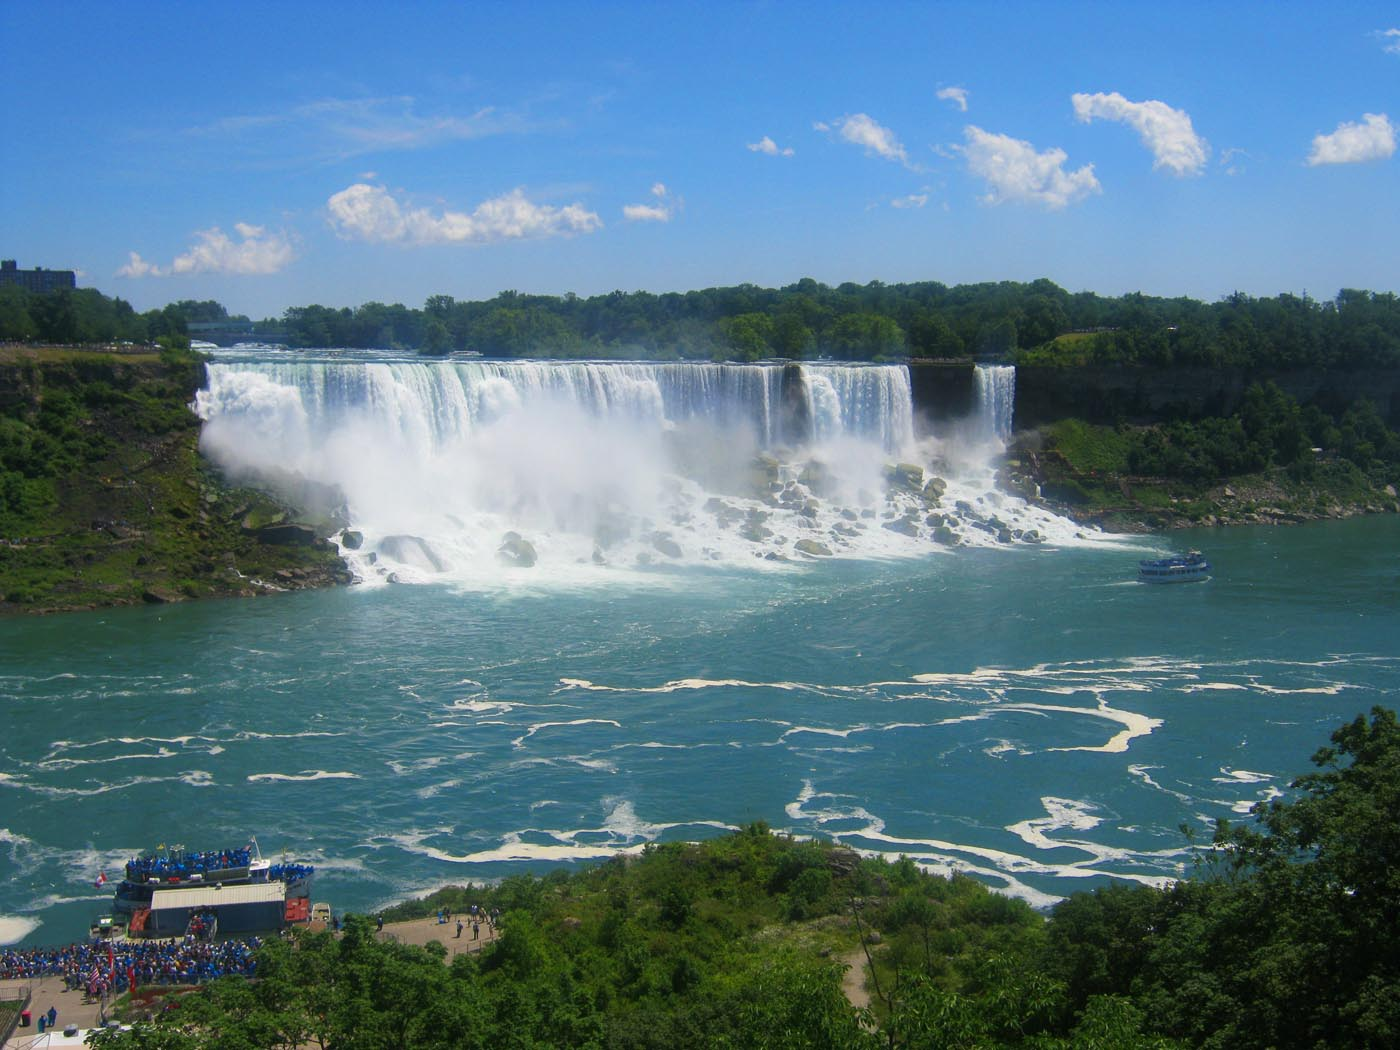 The American and Bridal Veil Falls - Niagara Falls